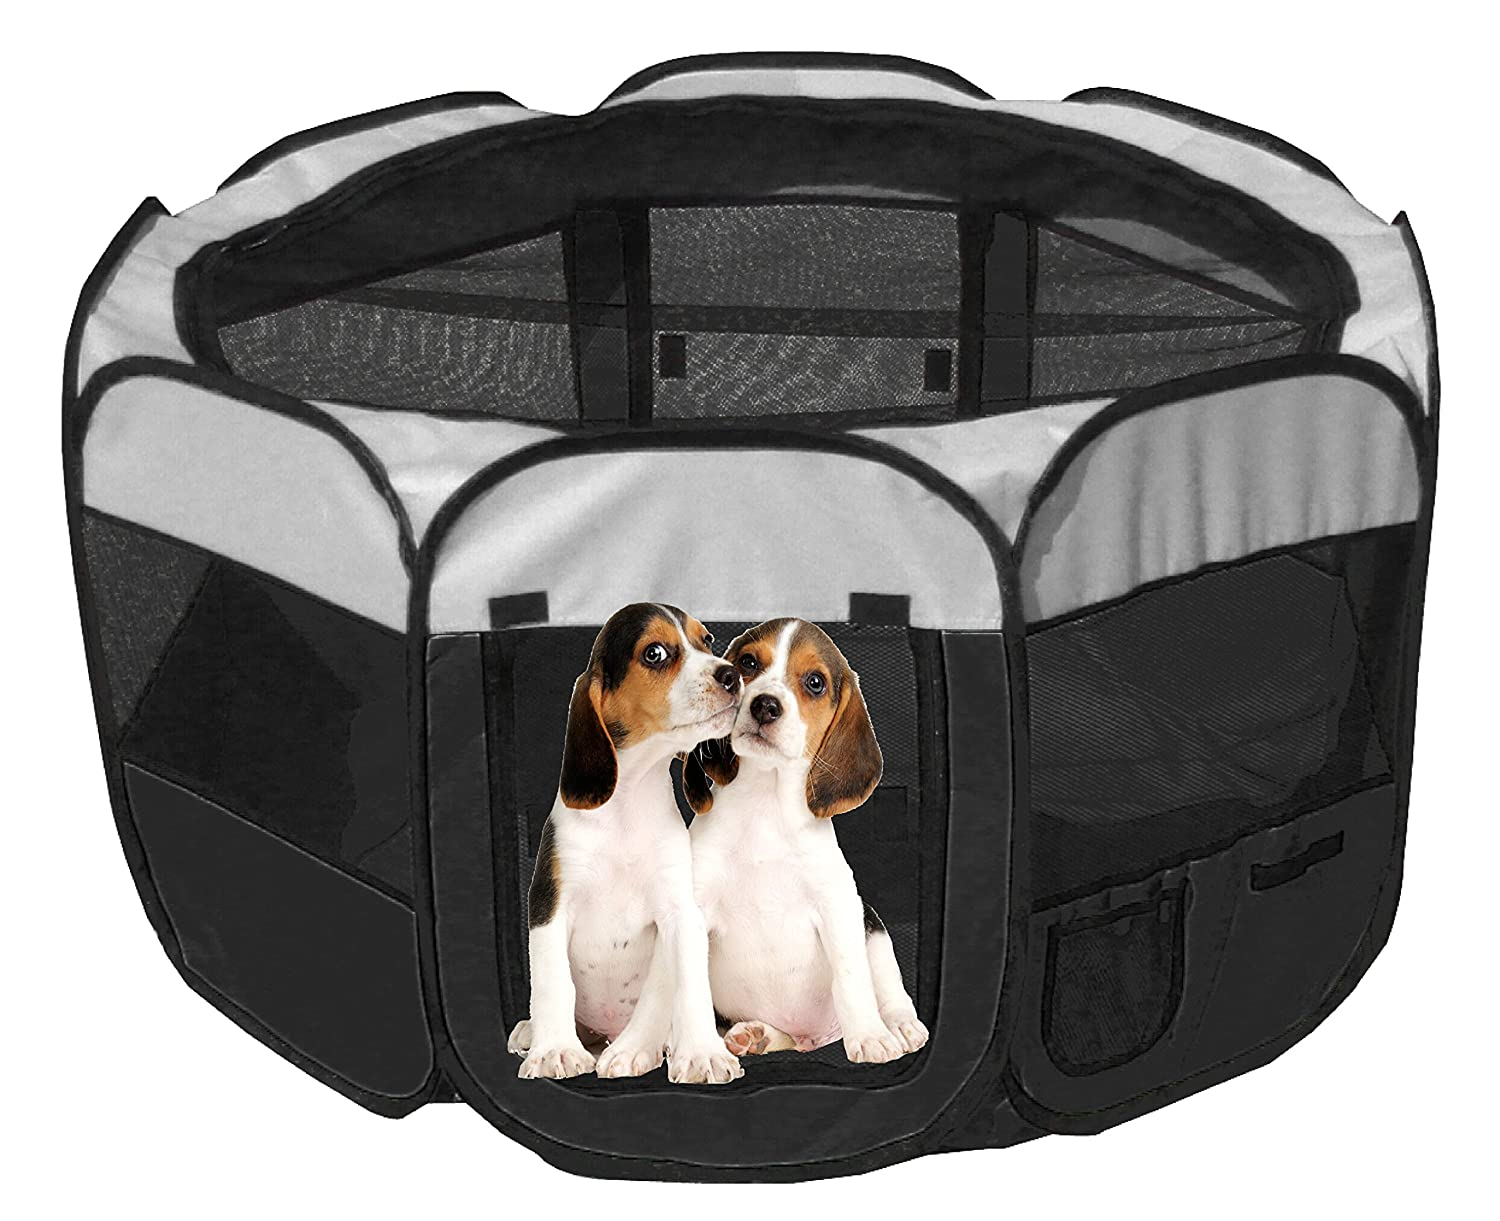 Amazon.com : PET LIFE \'All-Terrain\' Lightweight Easy Folding Wire ...